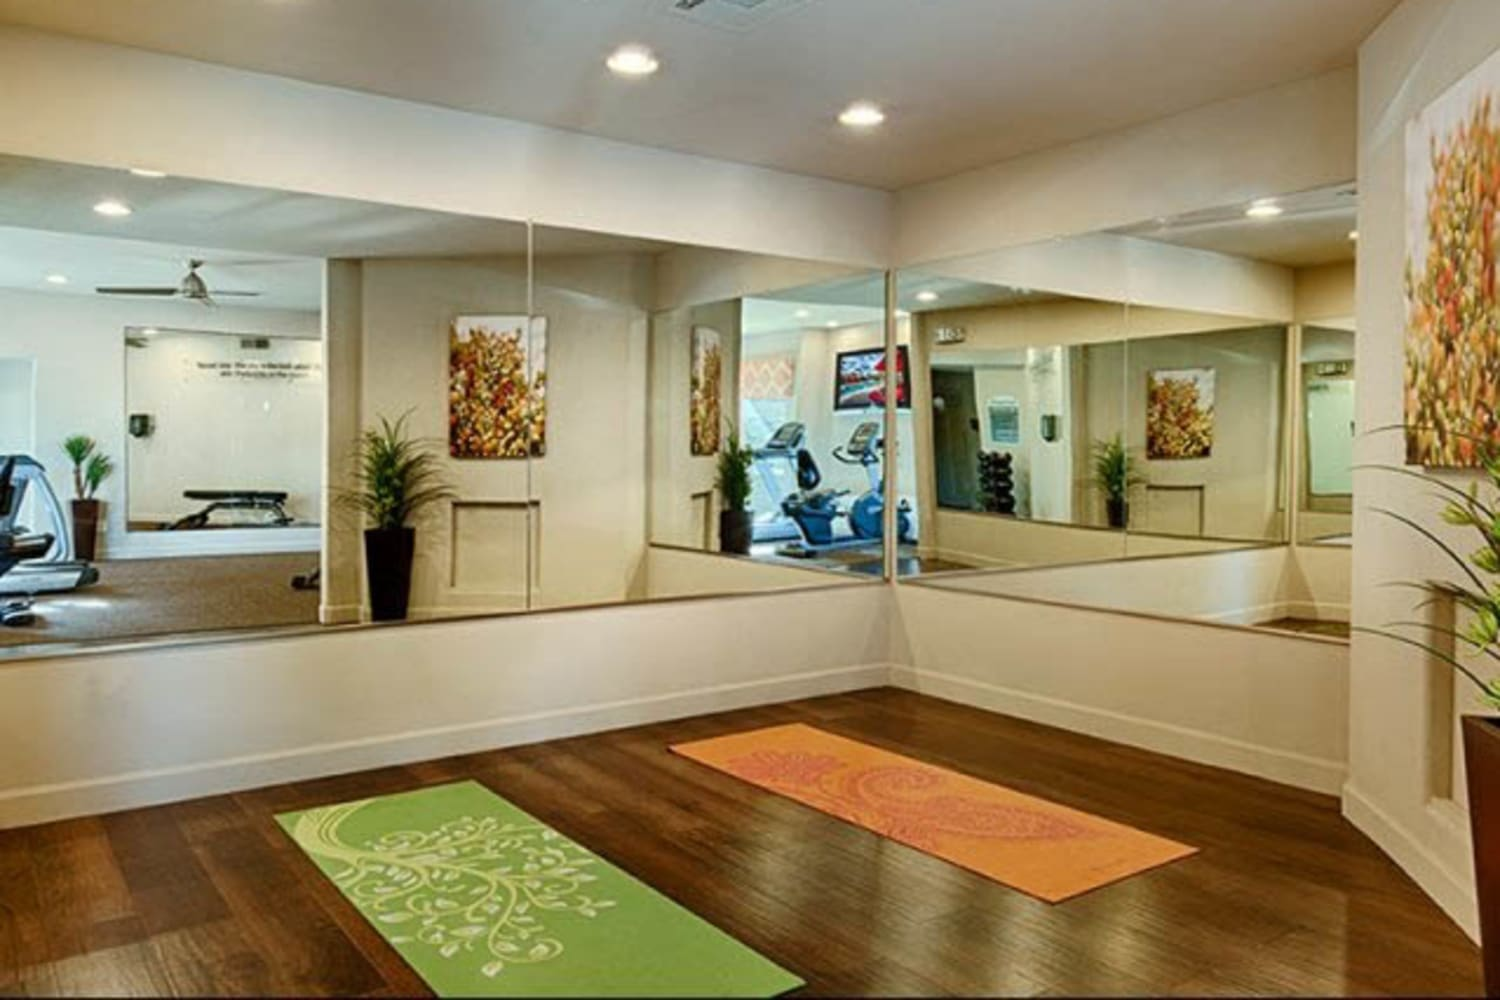 Yoga studio at Casa Santa Fe Apartments in Scottsdale, Arizona